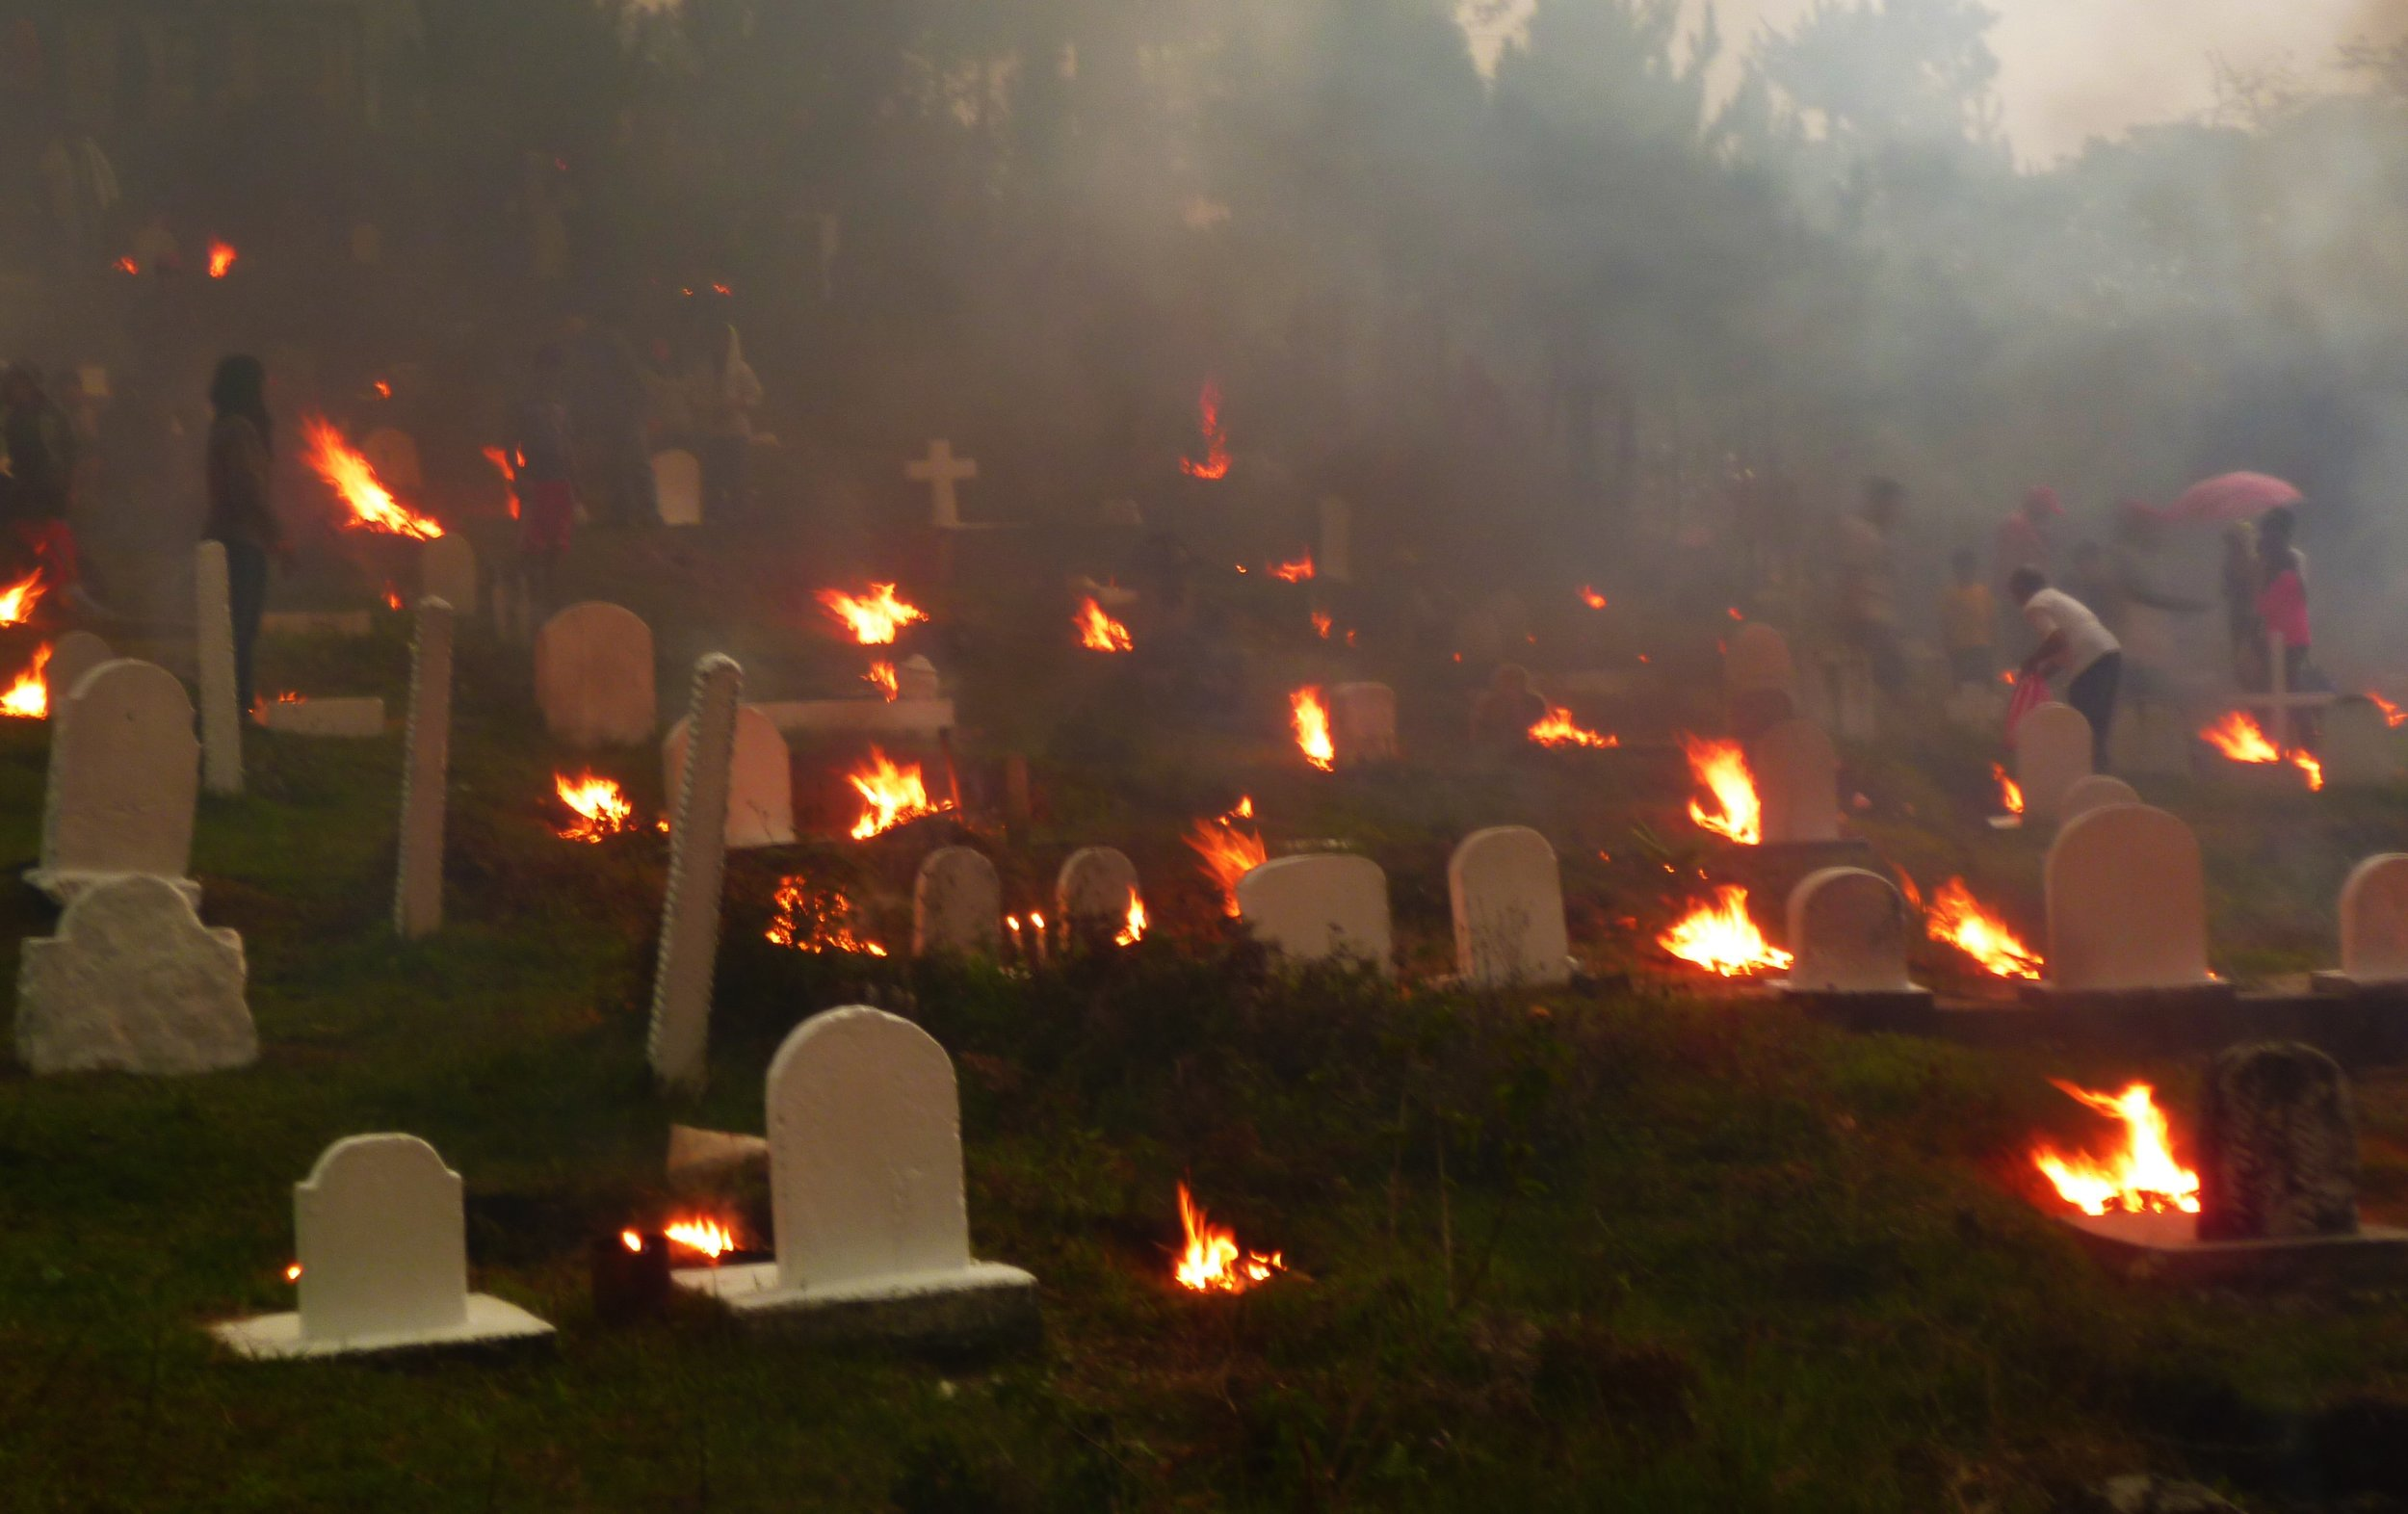 Burning graves at sunset...definitely not scary...